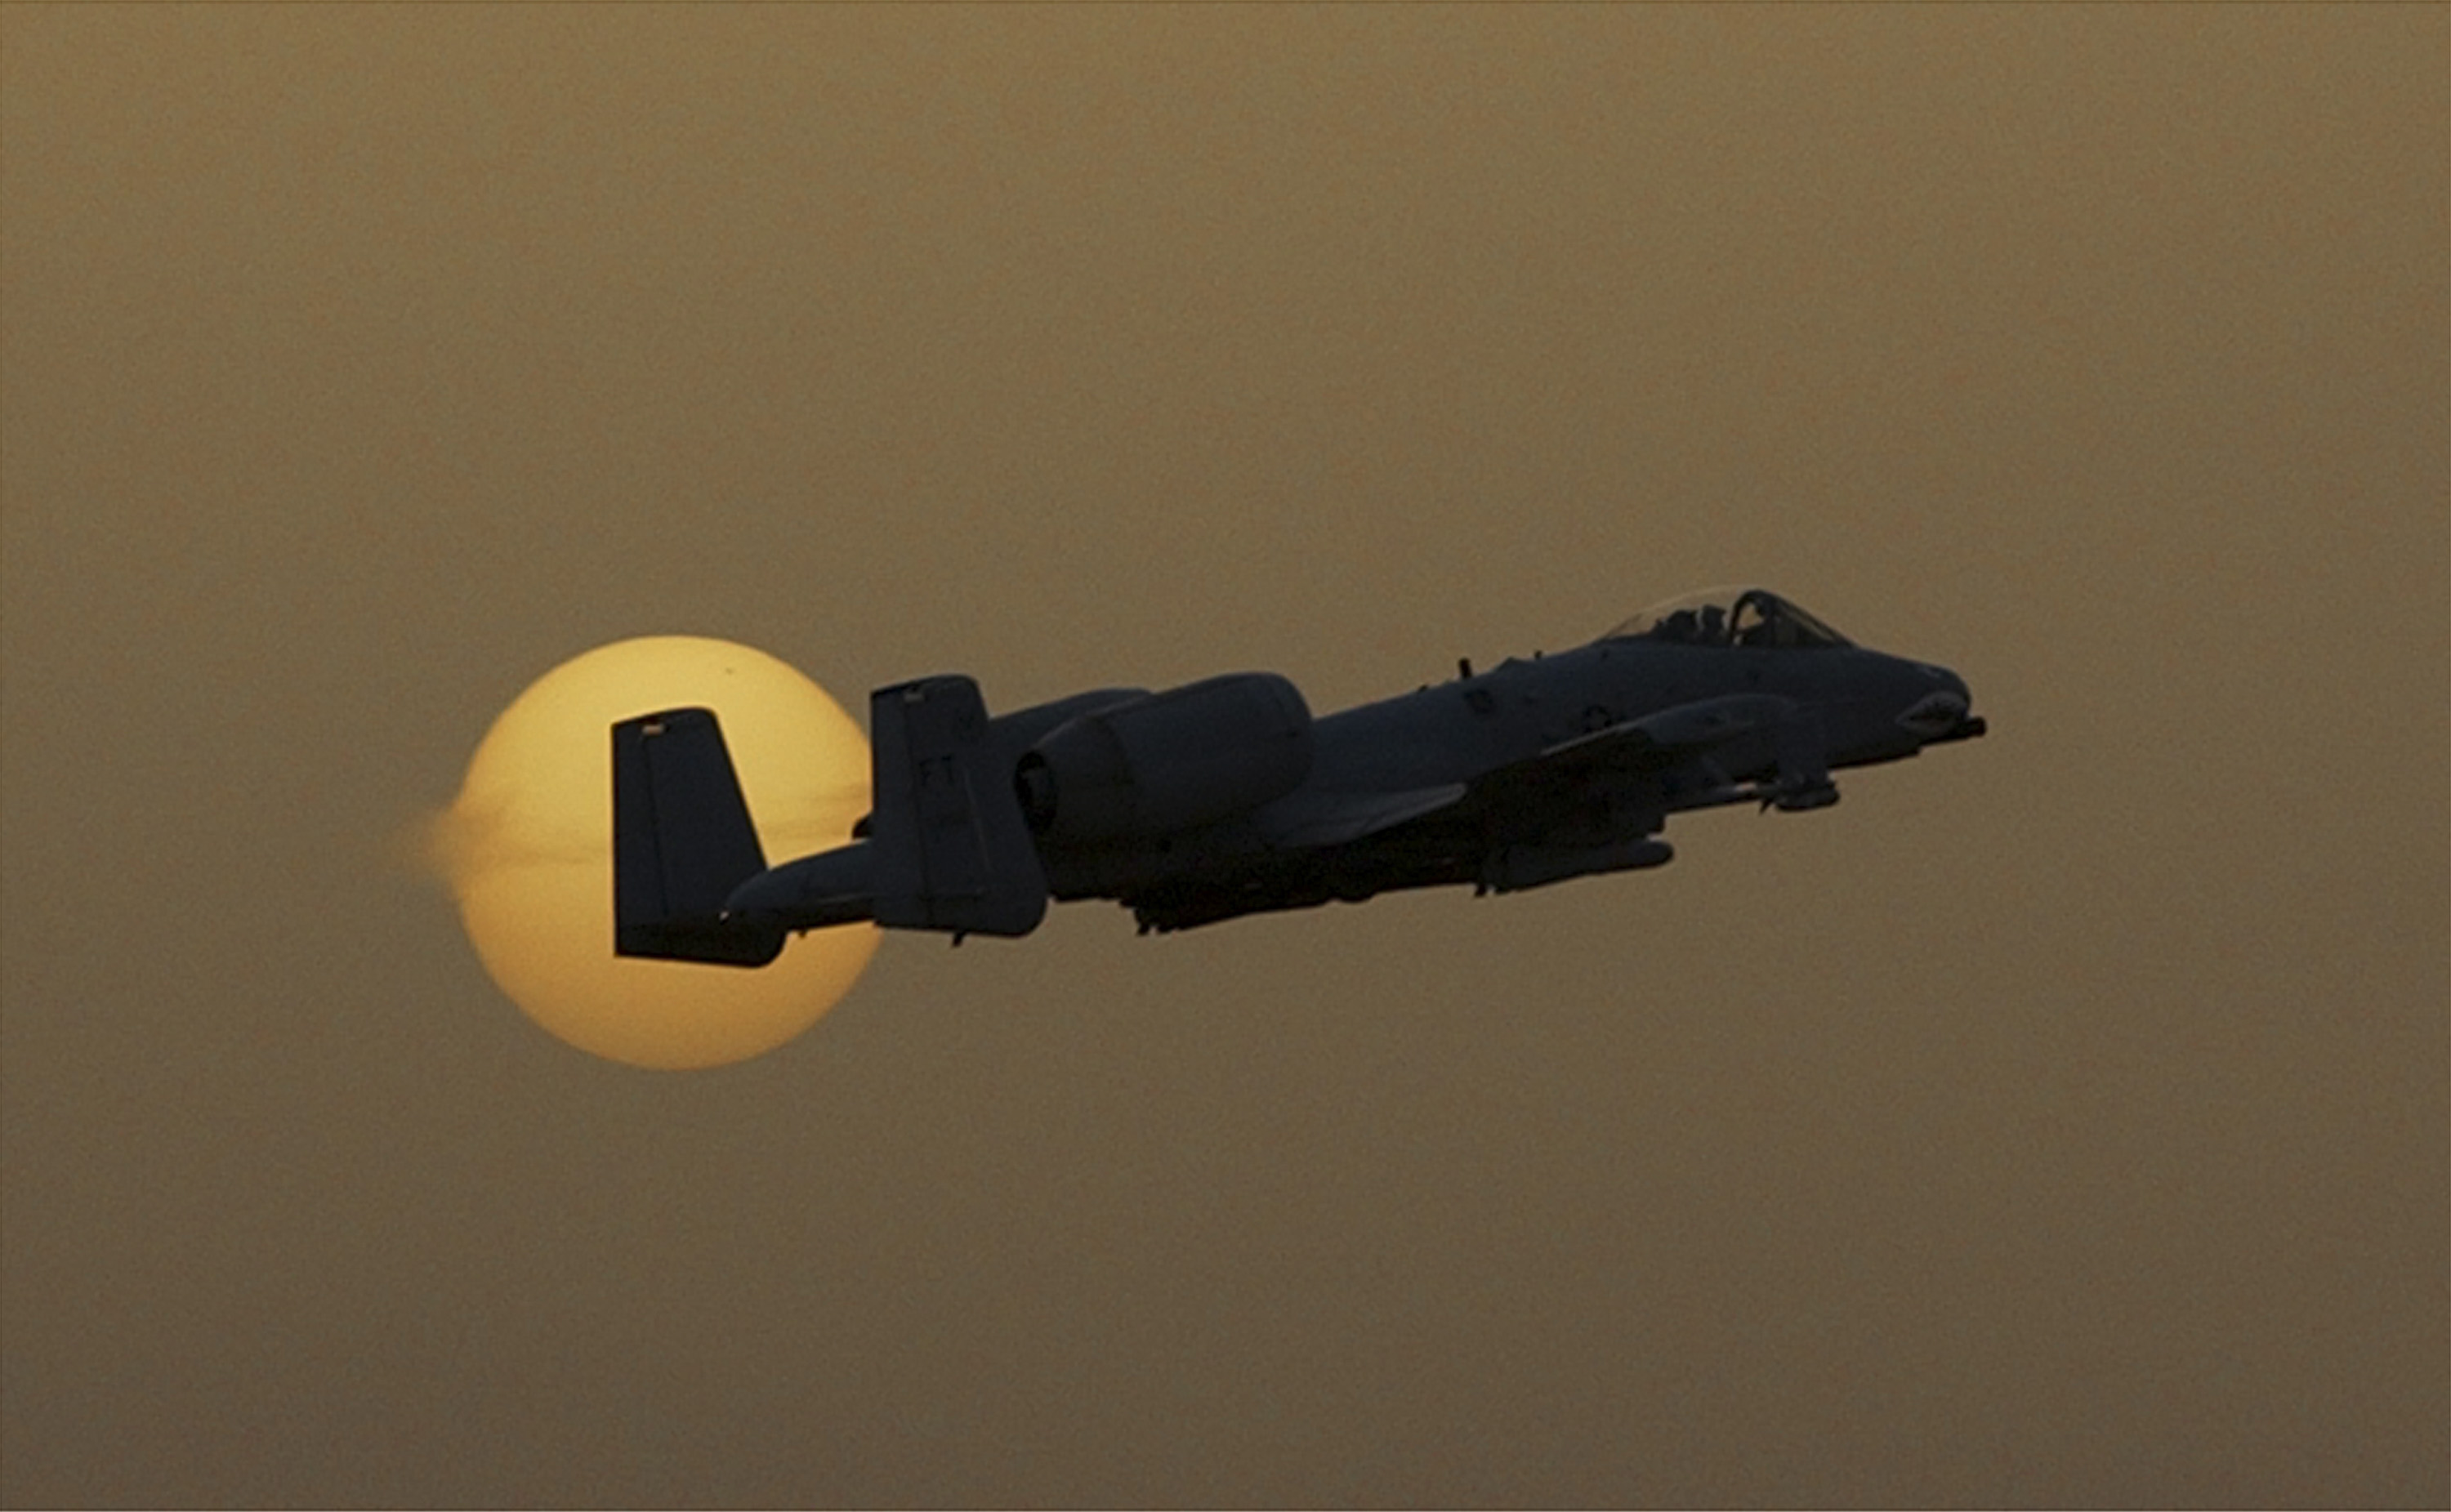 An A-10 conducts flight operations from an undisclosed middle eastern air base, flying towards Iraq in support of coalition forces on Saturday March 29, 2003. (Alan Lessig/Air Force Times)